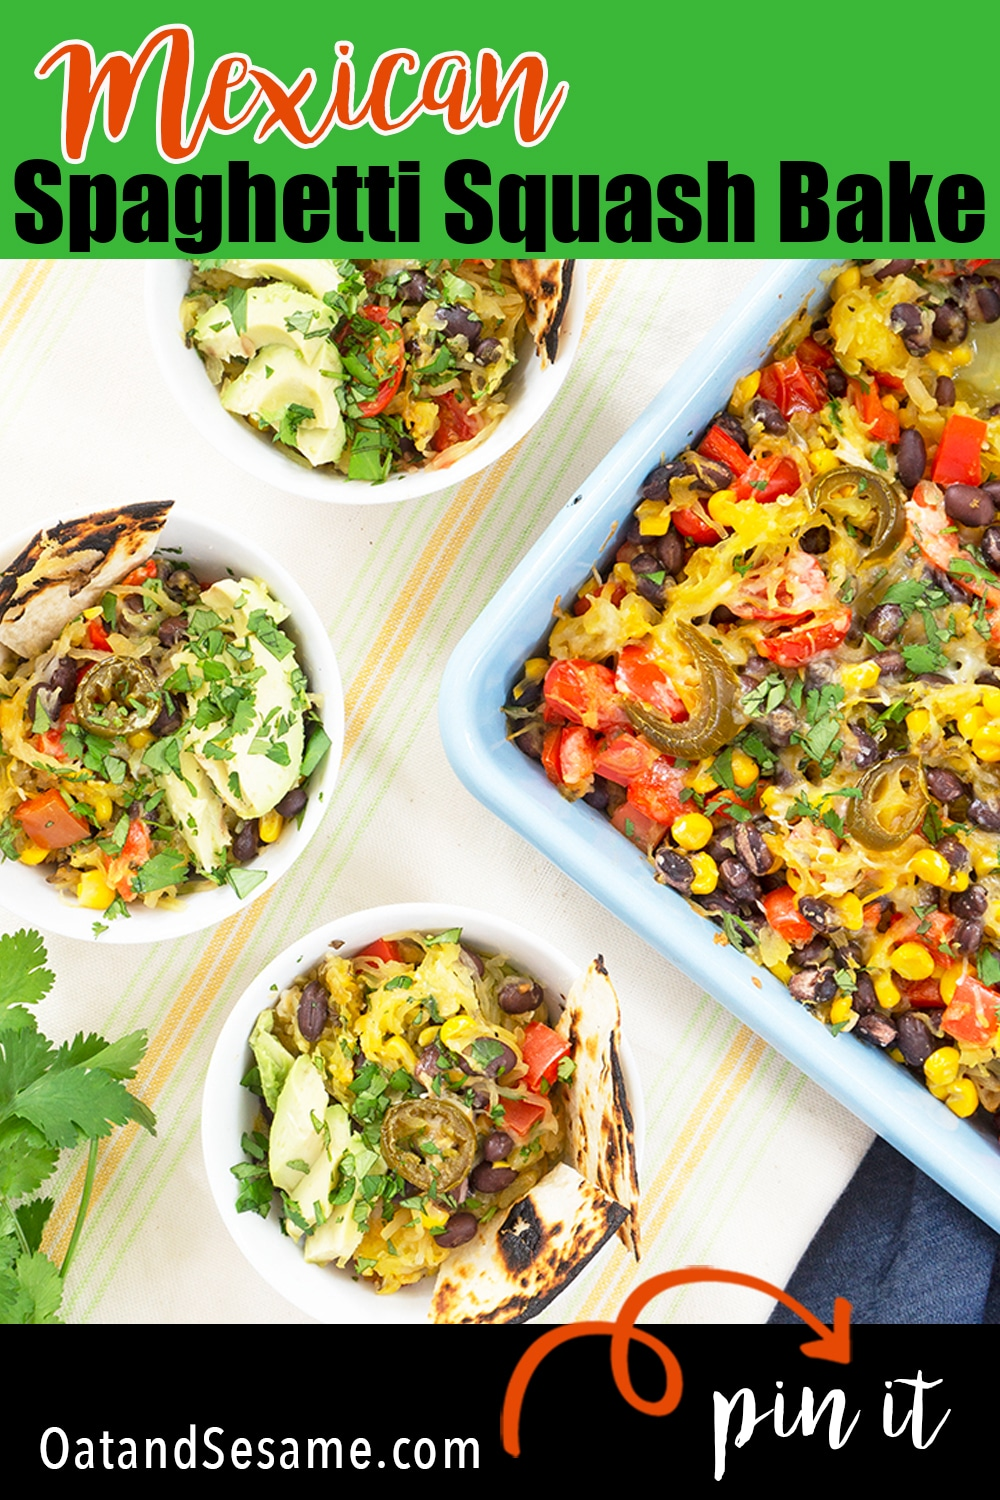 Mexican Spaghetti Squash Bake is an easy weeknight casserole made with black beans, bell pepper, cherry tomatoes, corn and green chilies. Served with sliced avocado, shredded cheese and pickled jalapeños. | #VEGETARIANRecipes | #SPAGHETTISQUASH | #CASSEROLERECIPE | #GLUTENFREEDINNERS | #HEALTHYRecipes at OatandSesame.com